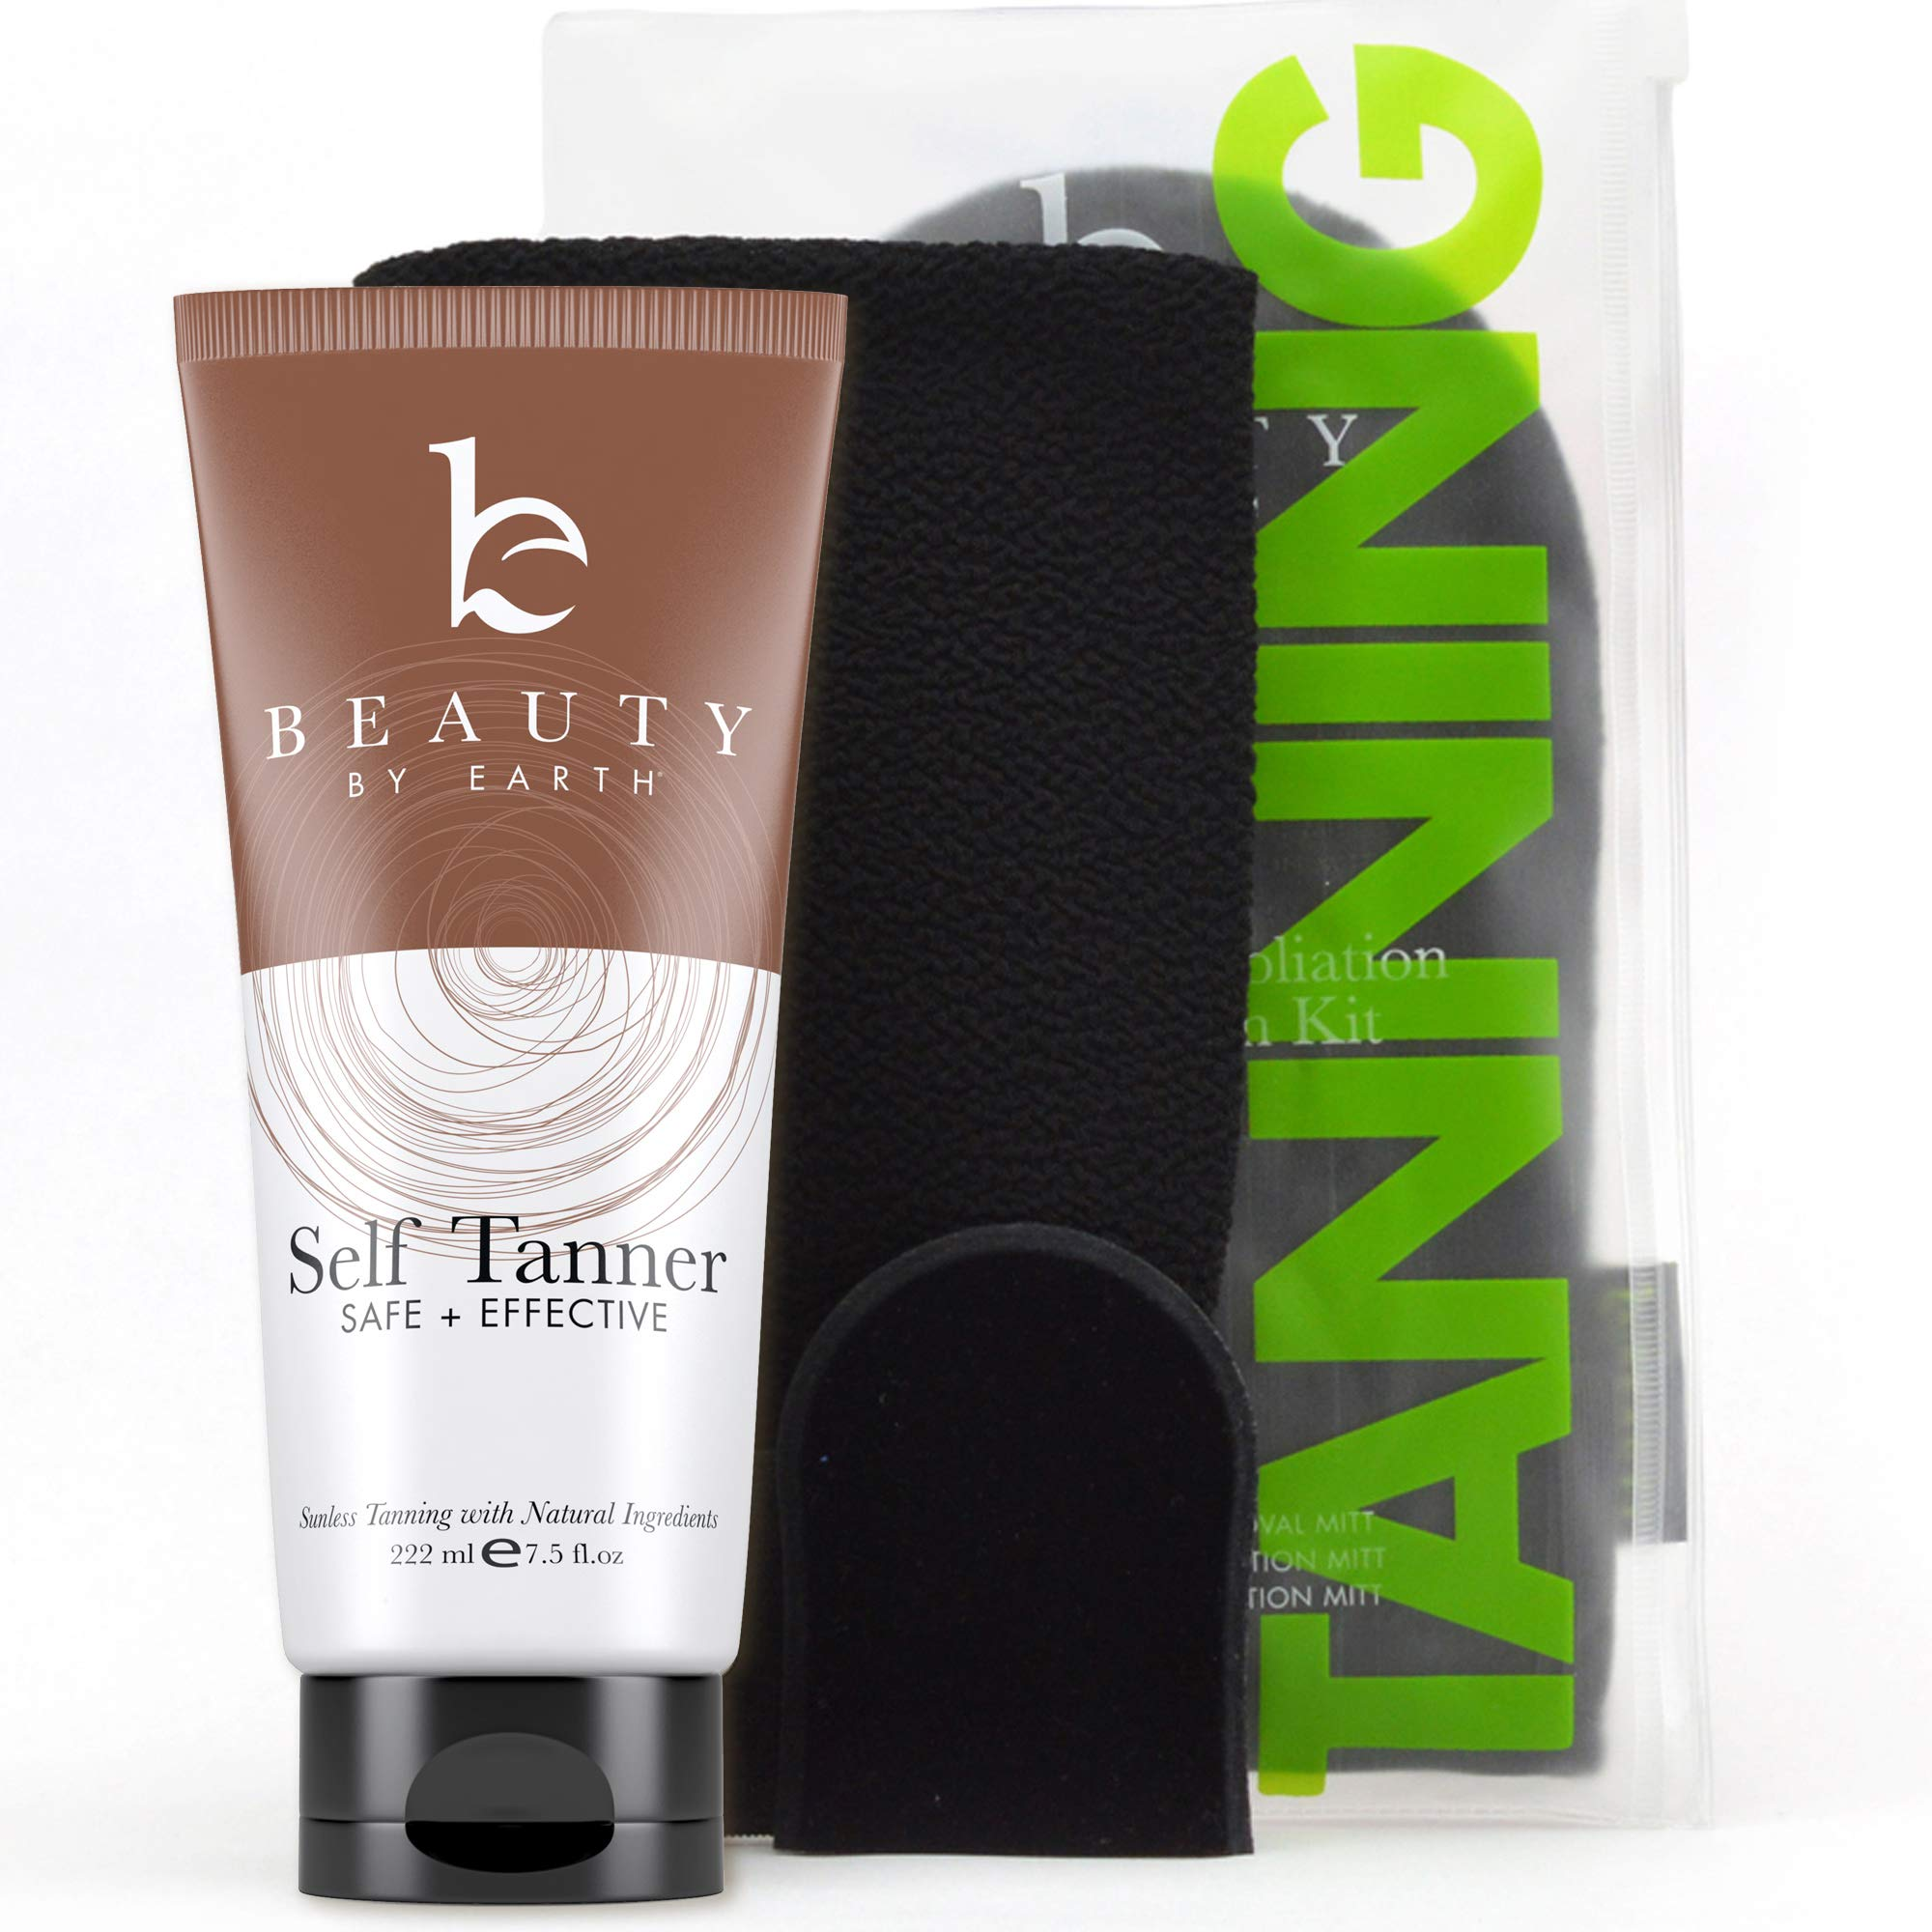 Self Tanner & Tanning Mitt Set - With Natural Tanning Lotion, Exfoliating Gloves, Self Tanner Mitt for Body and Face Tanner Tanning Mit, Best Self Tanning Lotion Kit for Your Self Tan and Fake Tan by Beauty by Earth